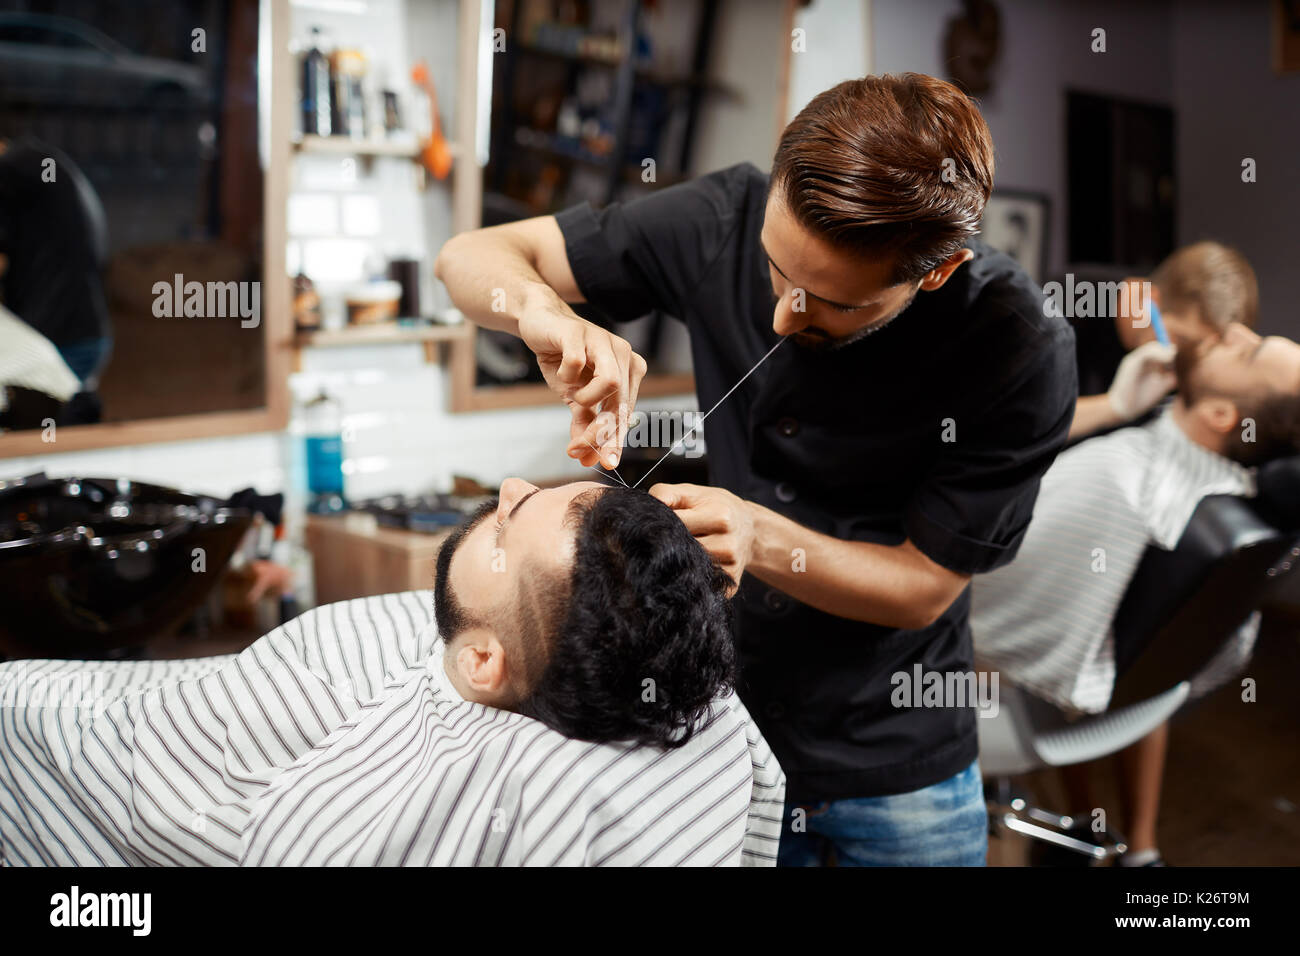 Hairdresser doing correction and cutting bread in modern barbershop. - Stock Image